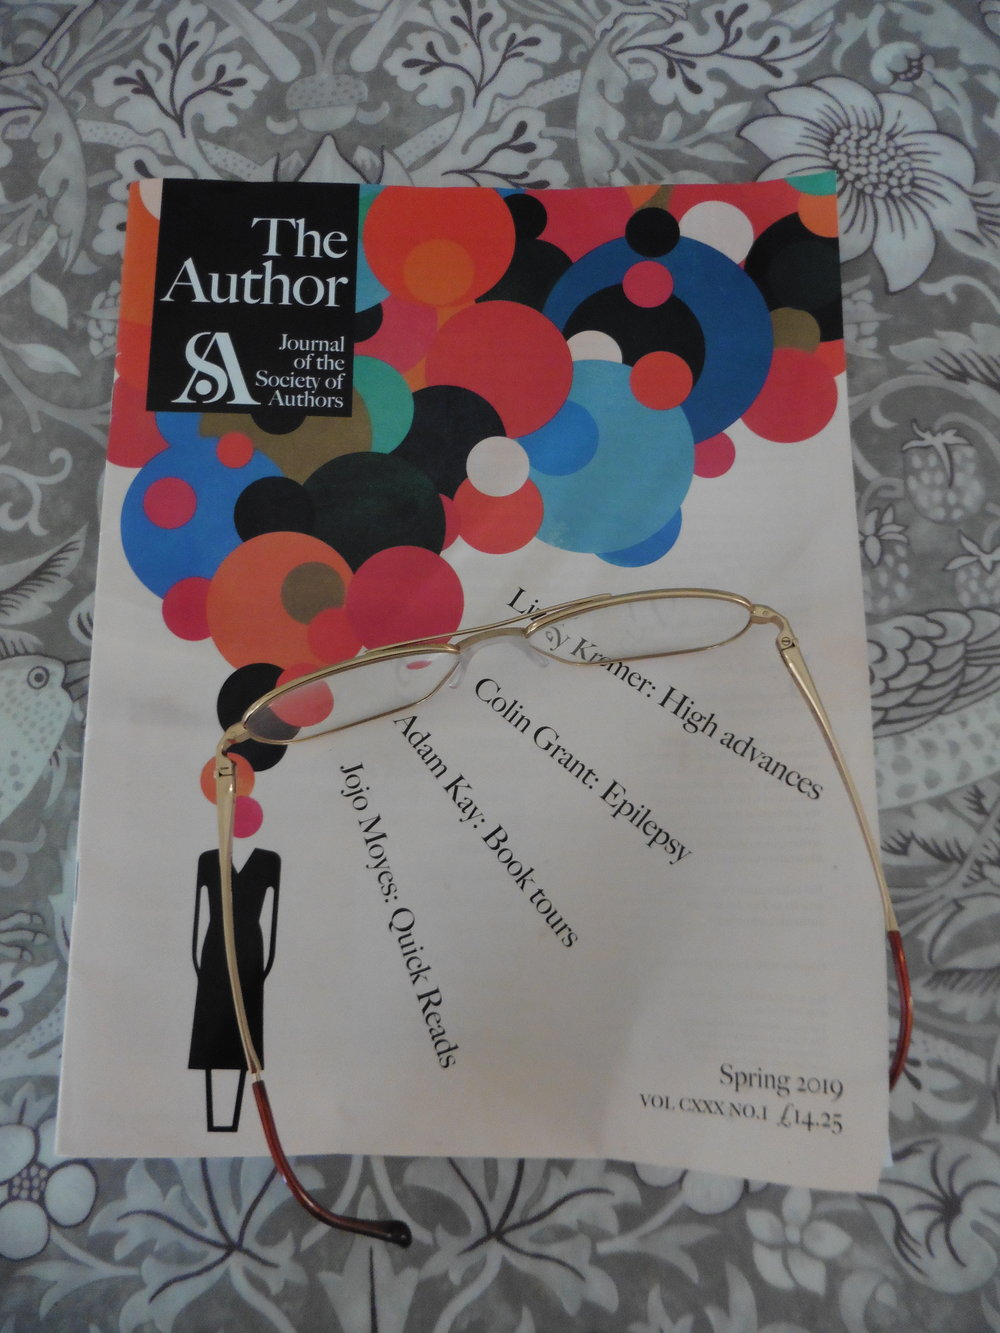 Cover of The Author magazine, photographed by Terry Freedman